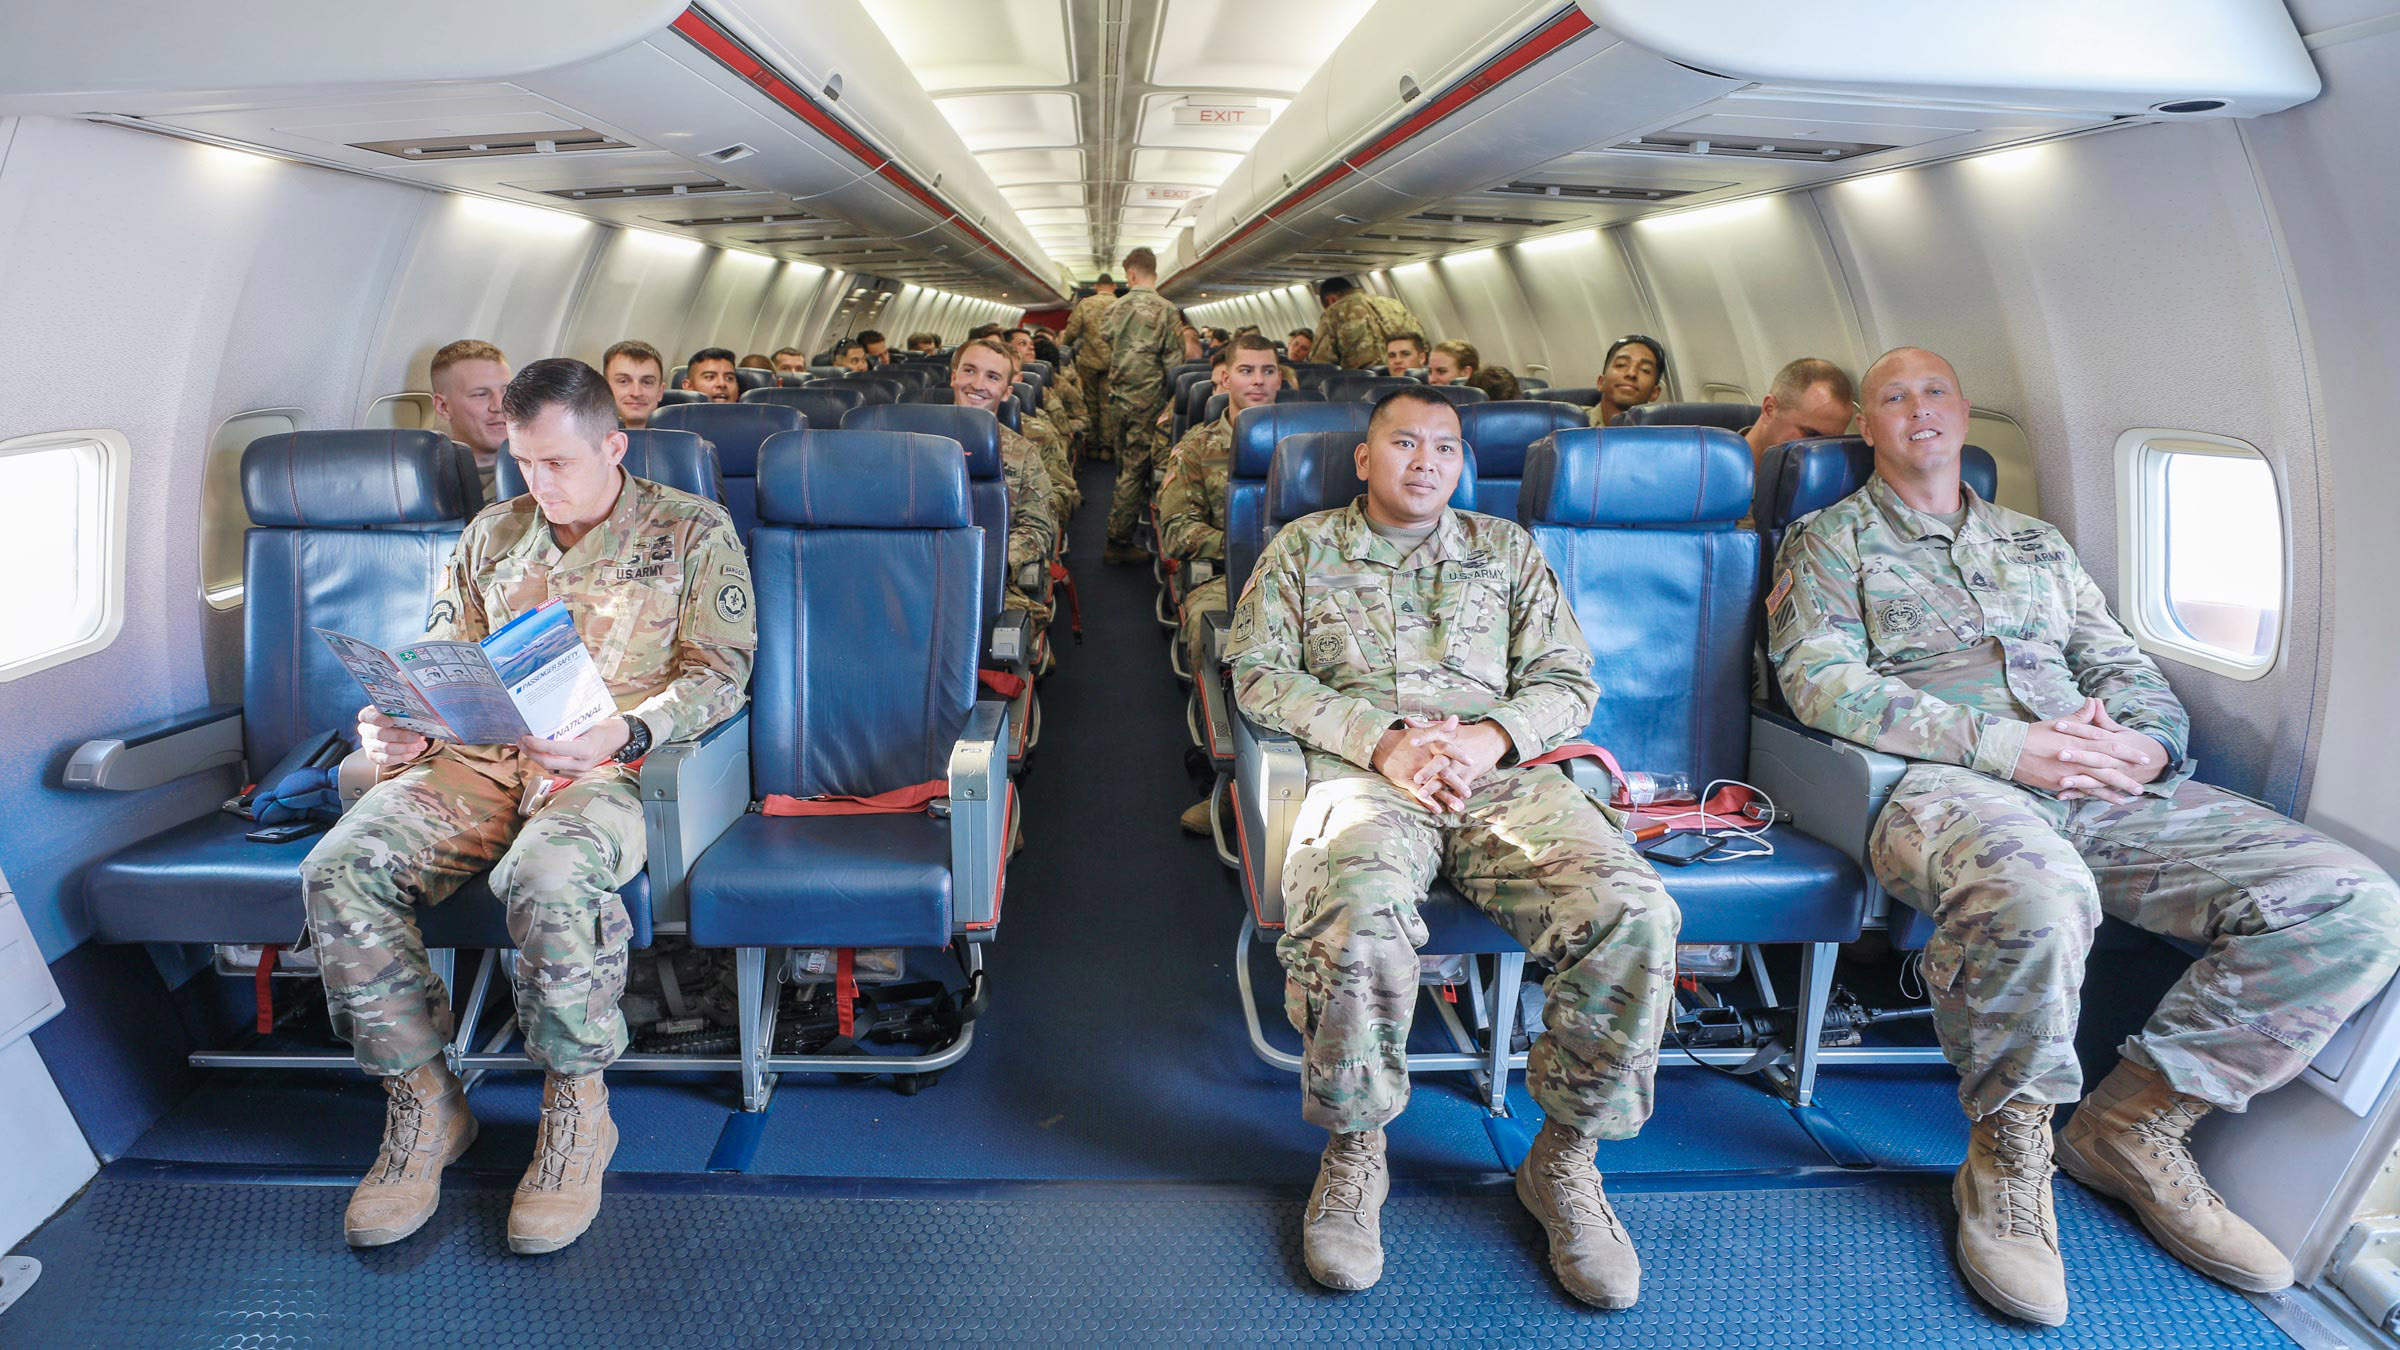 Service members sitting in a plane